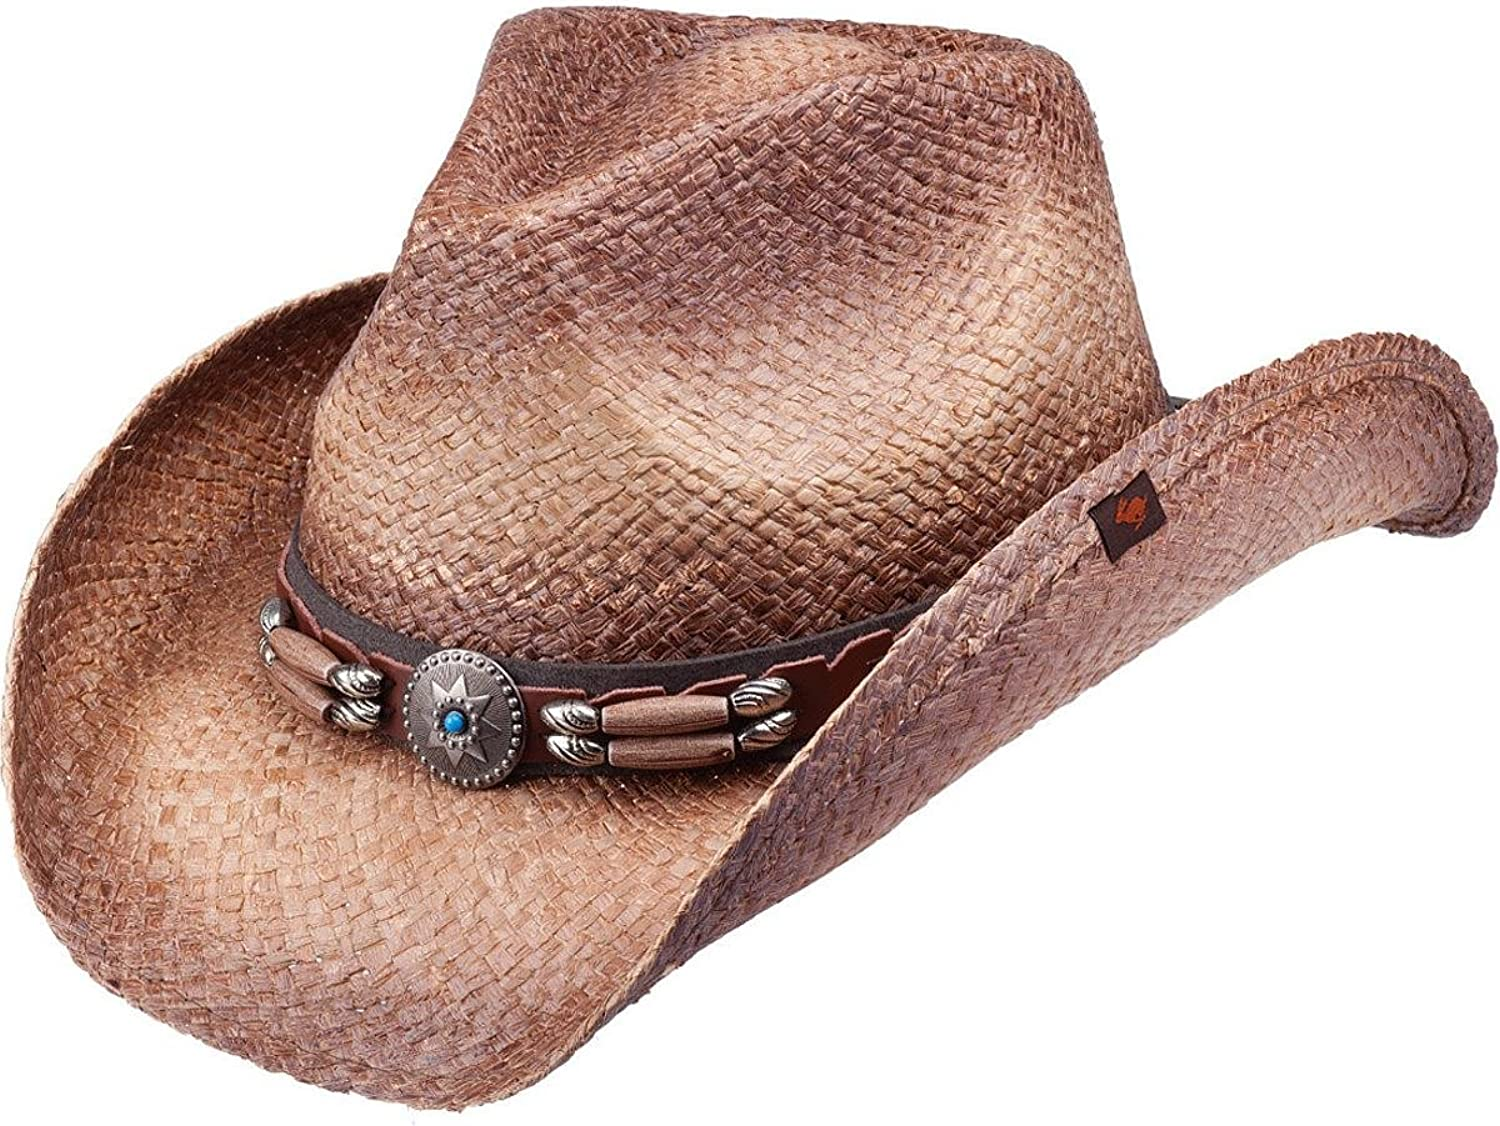 Peter New sales Grimm Ltd Unisex Contraband Straw Brown Spring new work one after another Hat Cowboy Siz One